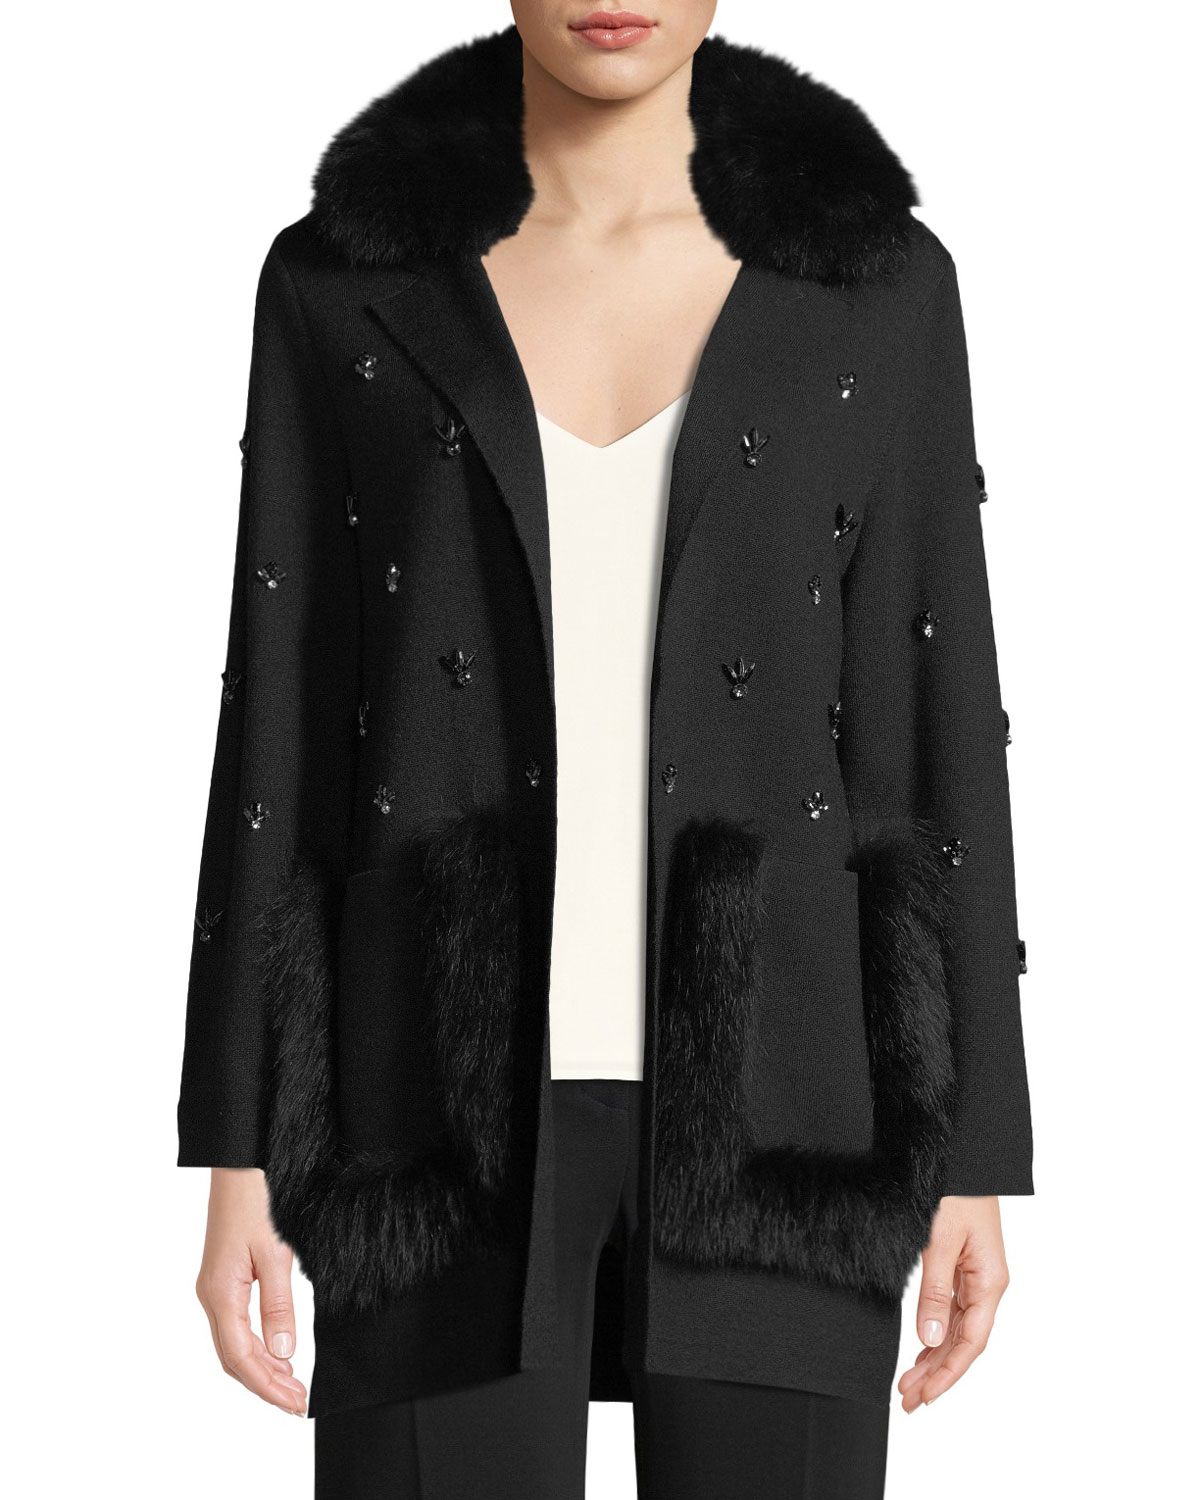 CHRISSIE SWEATER JACKET WITH FUR COLLAR